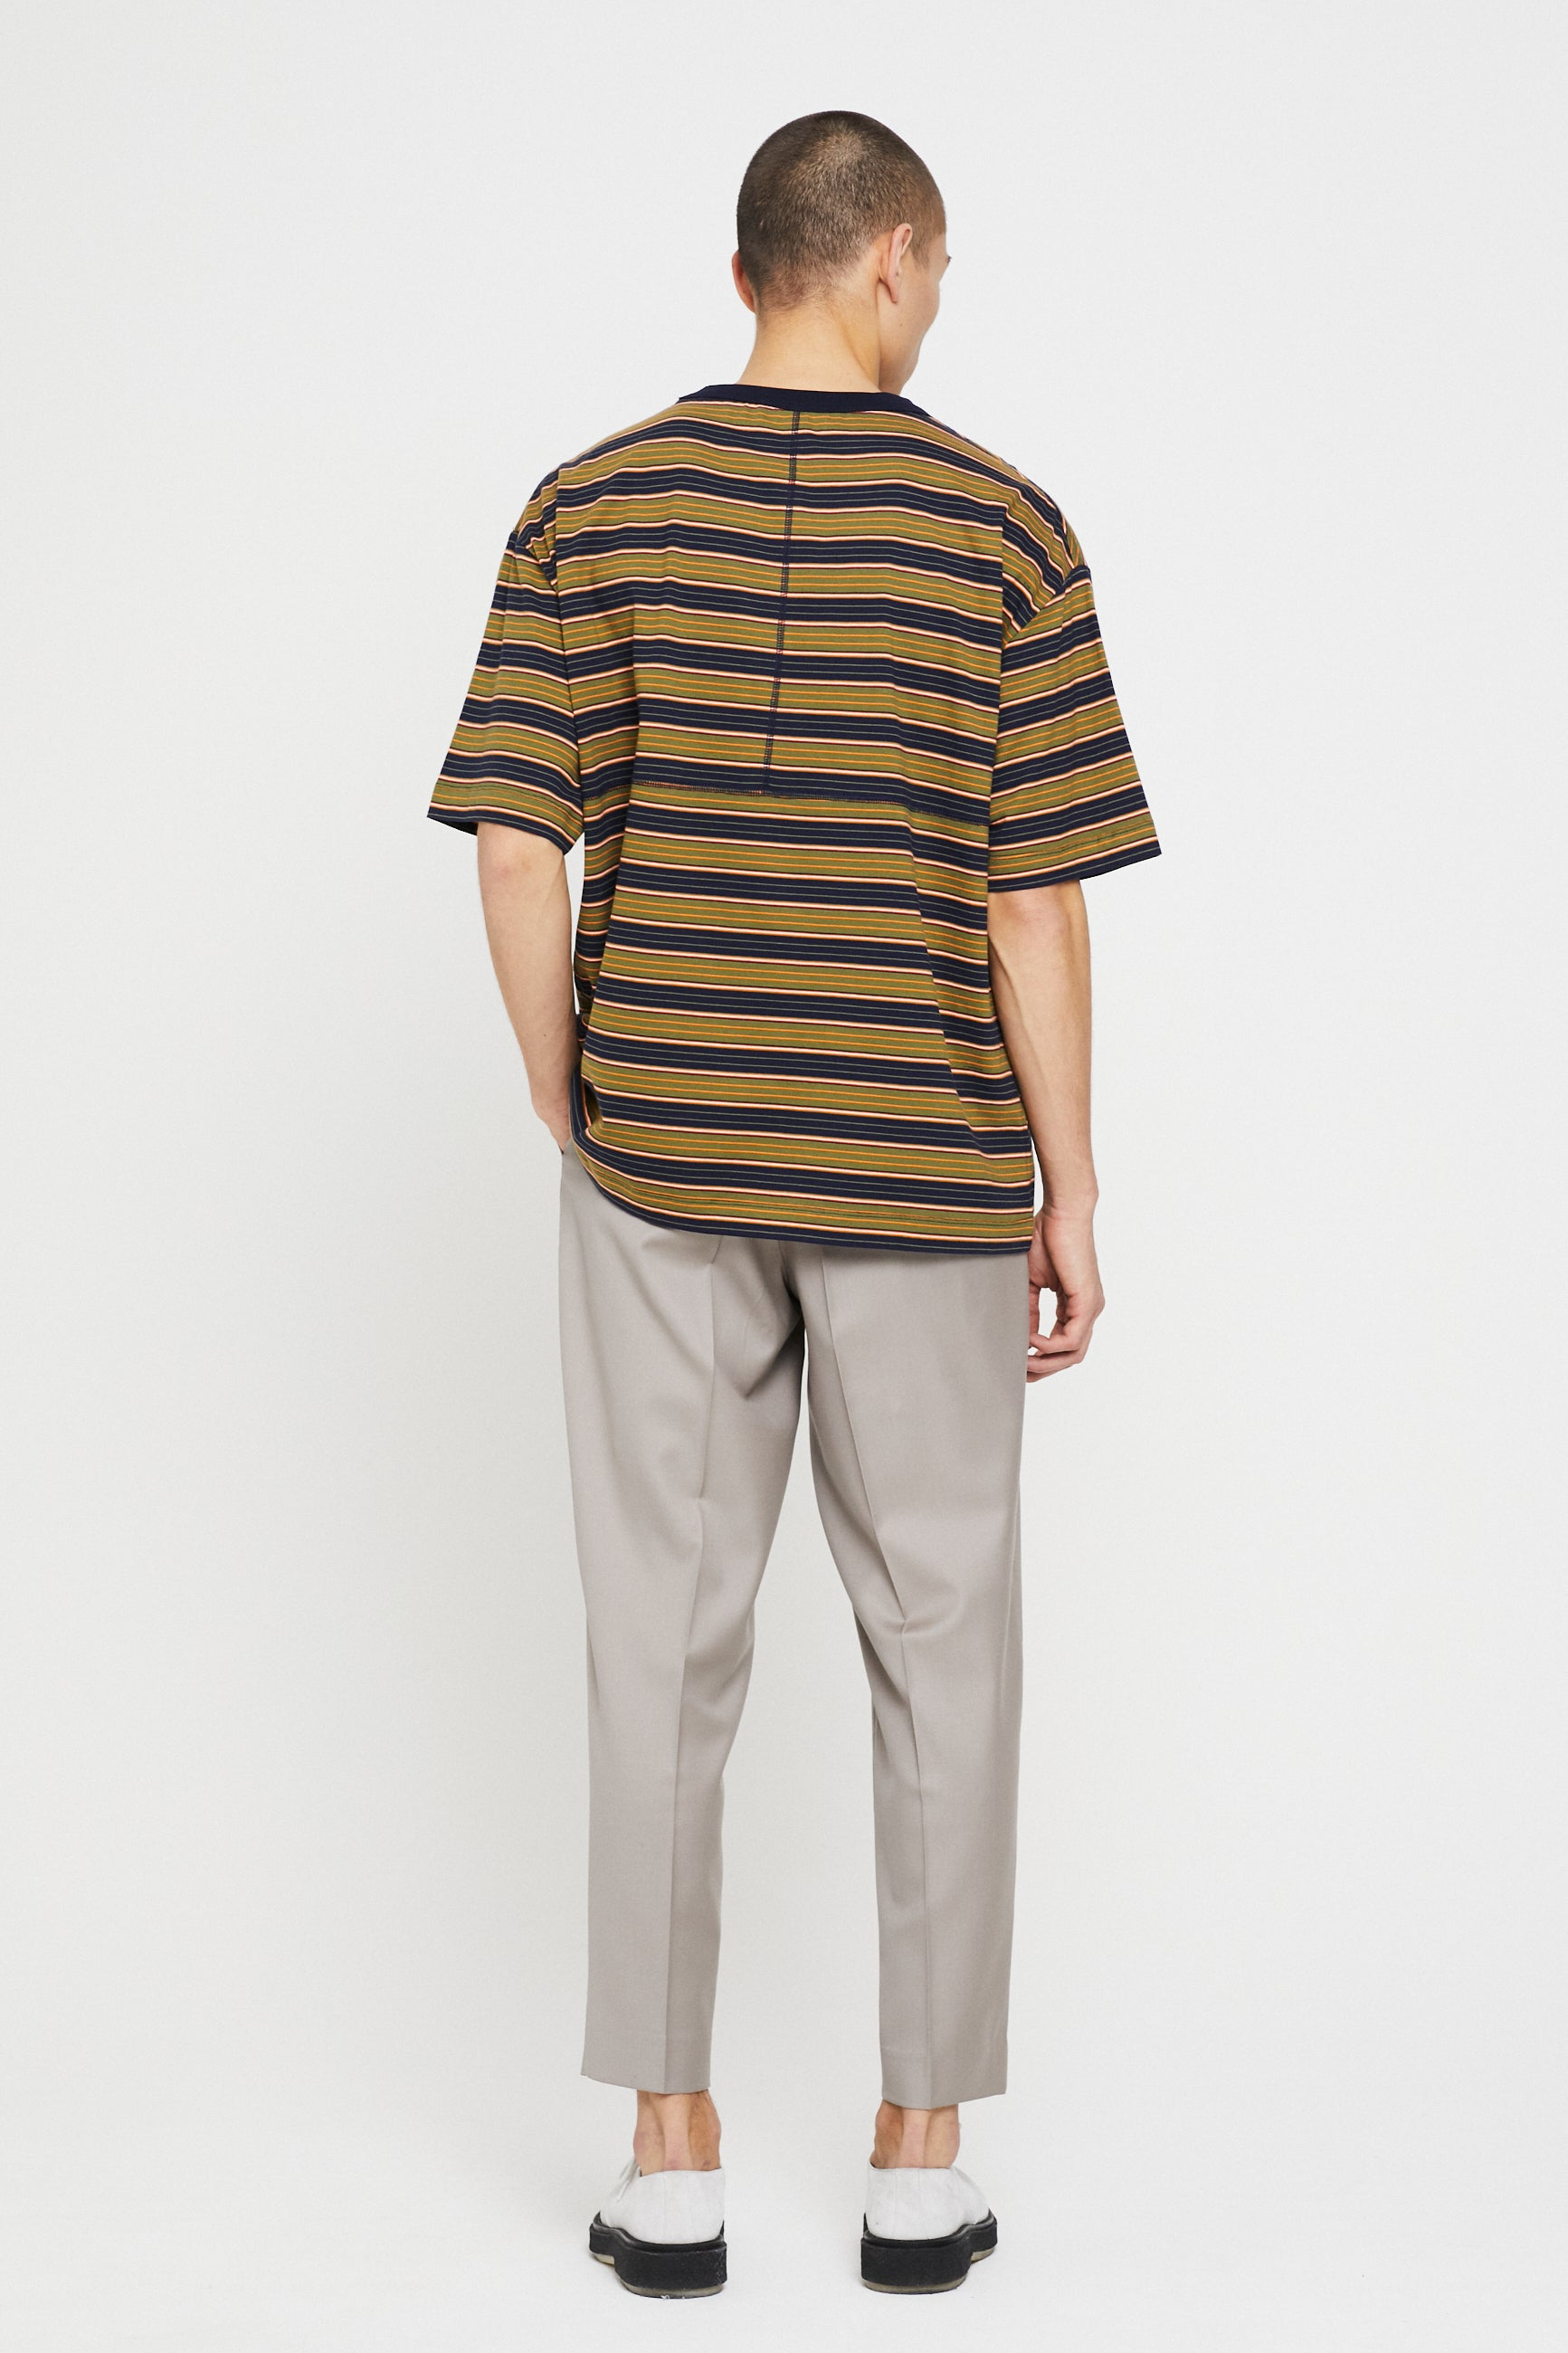 Études Museum Striped T-Shirt 5